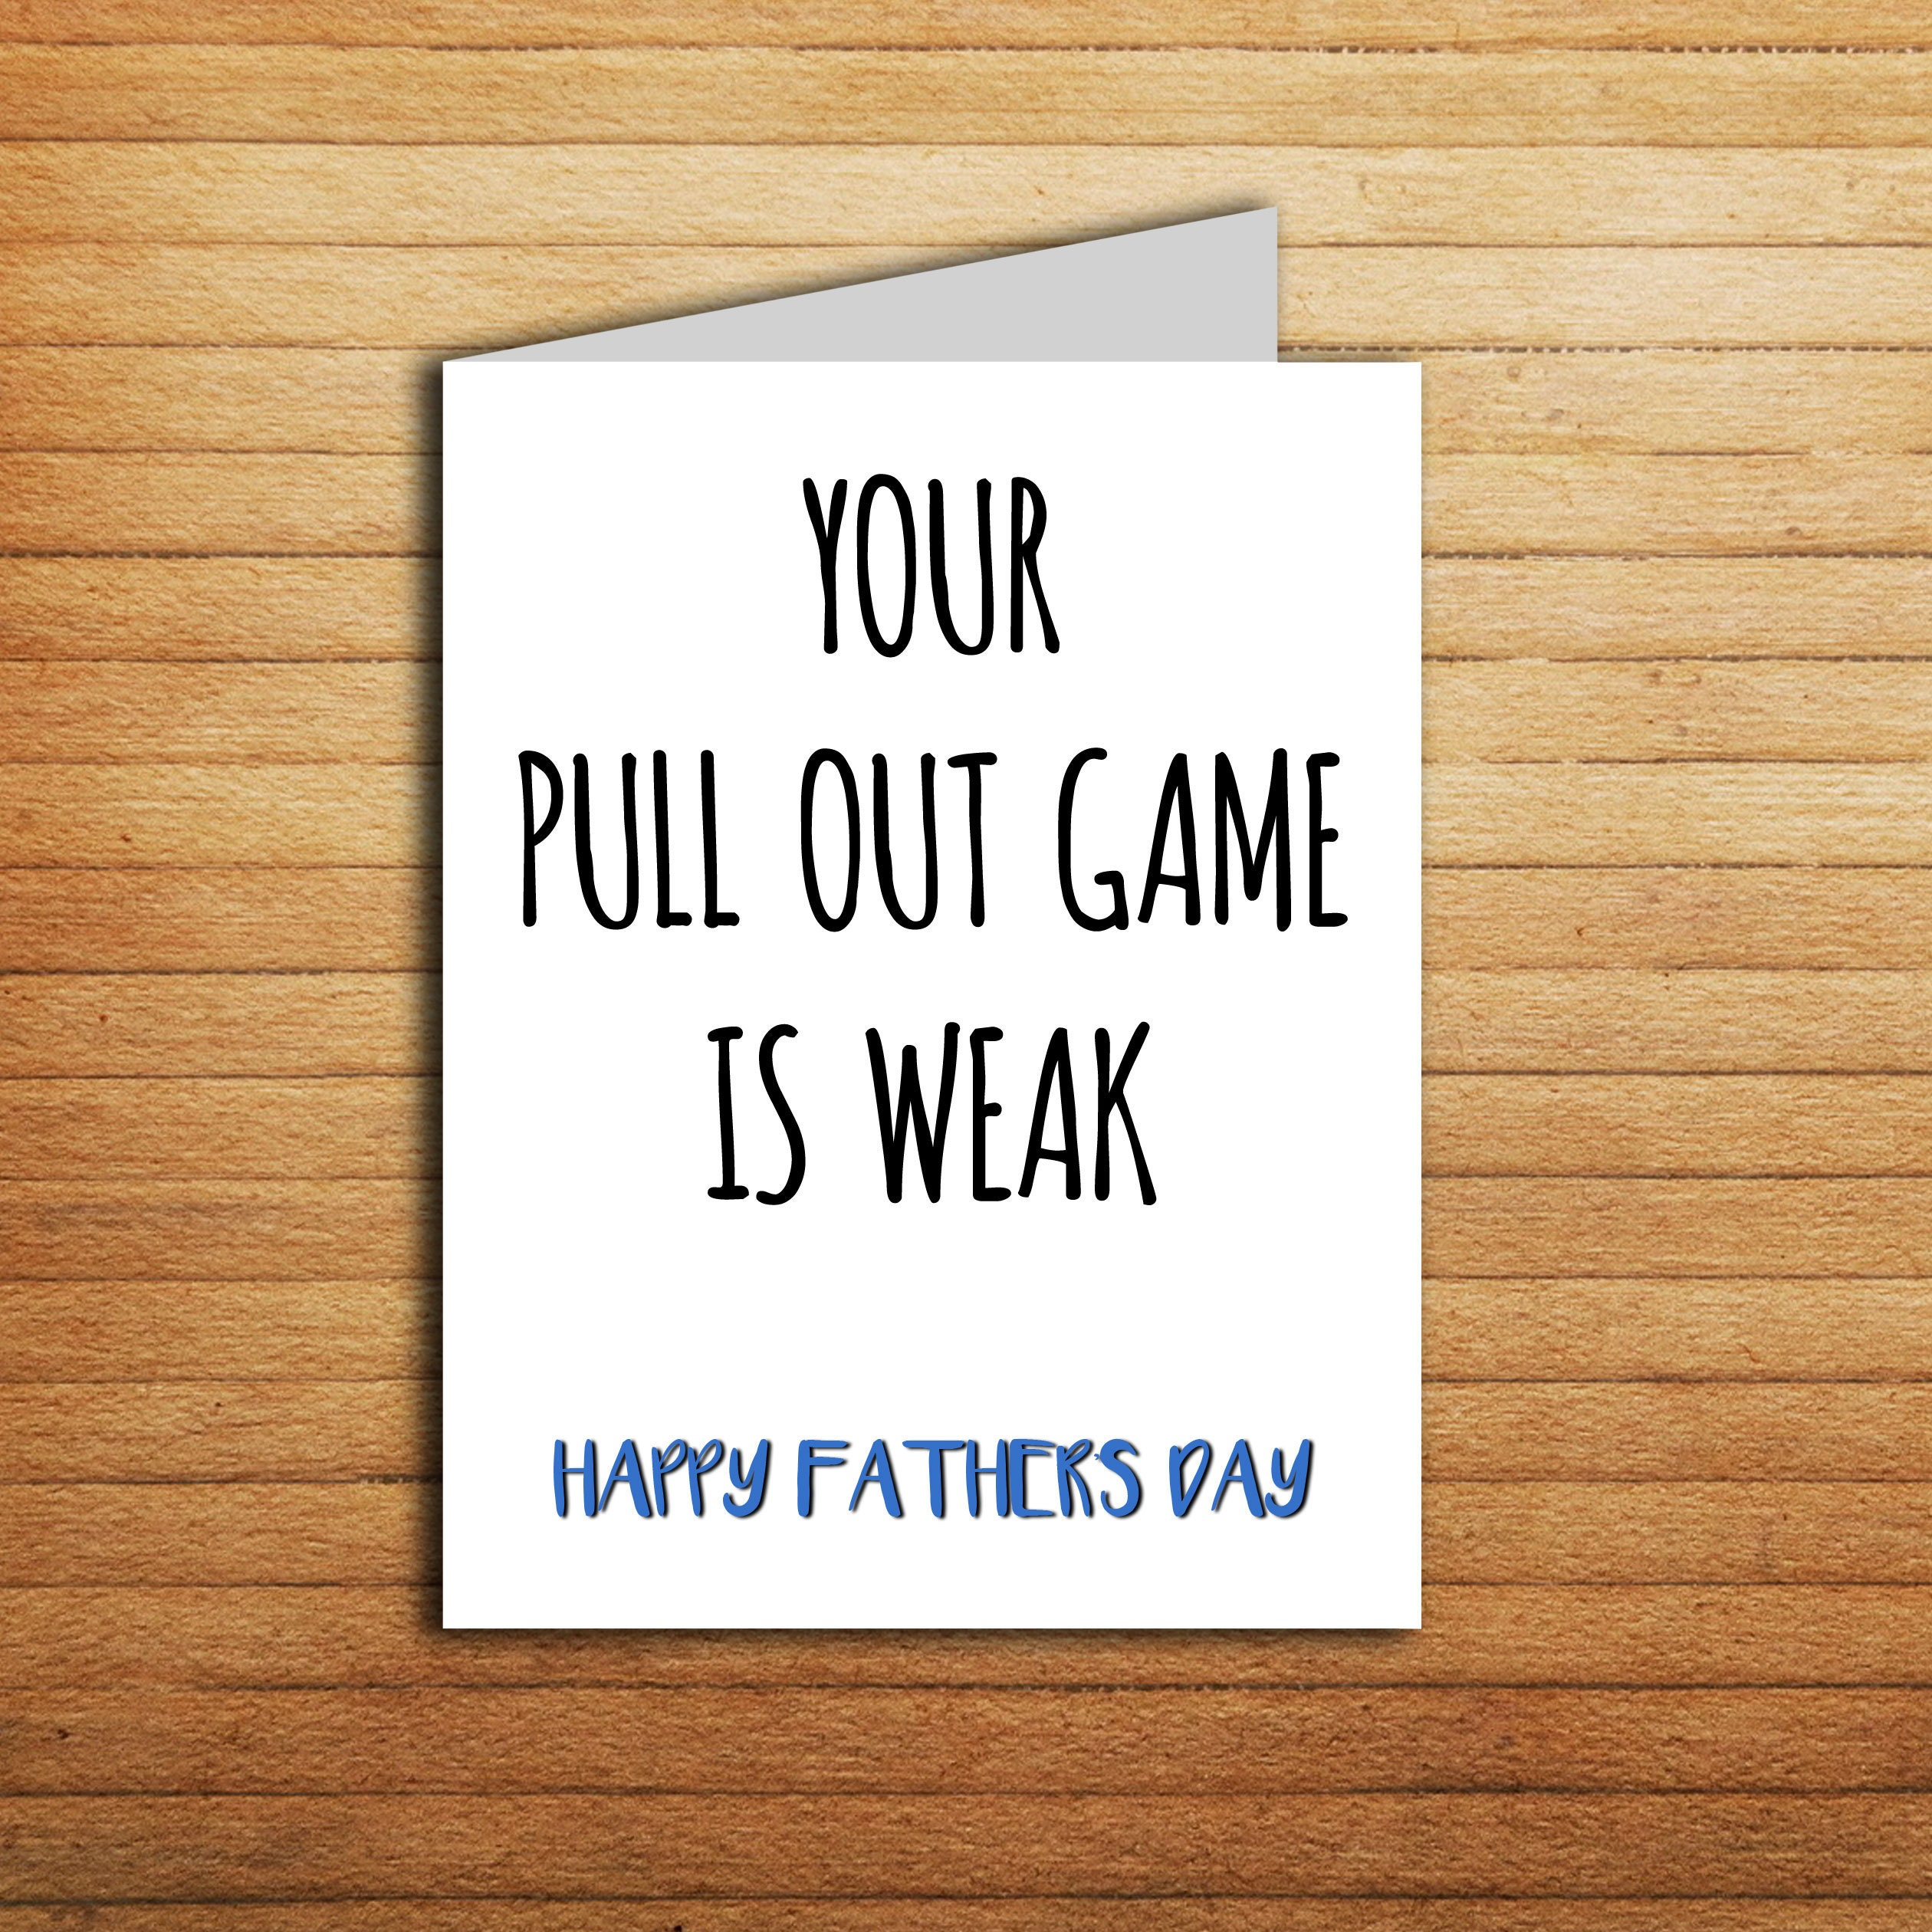 Your Pull Out Game Is Weak Funny Fathers Day Card Etsy